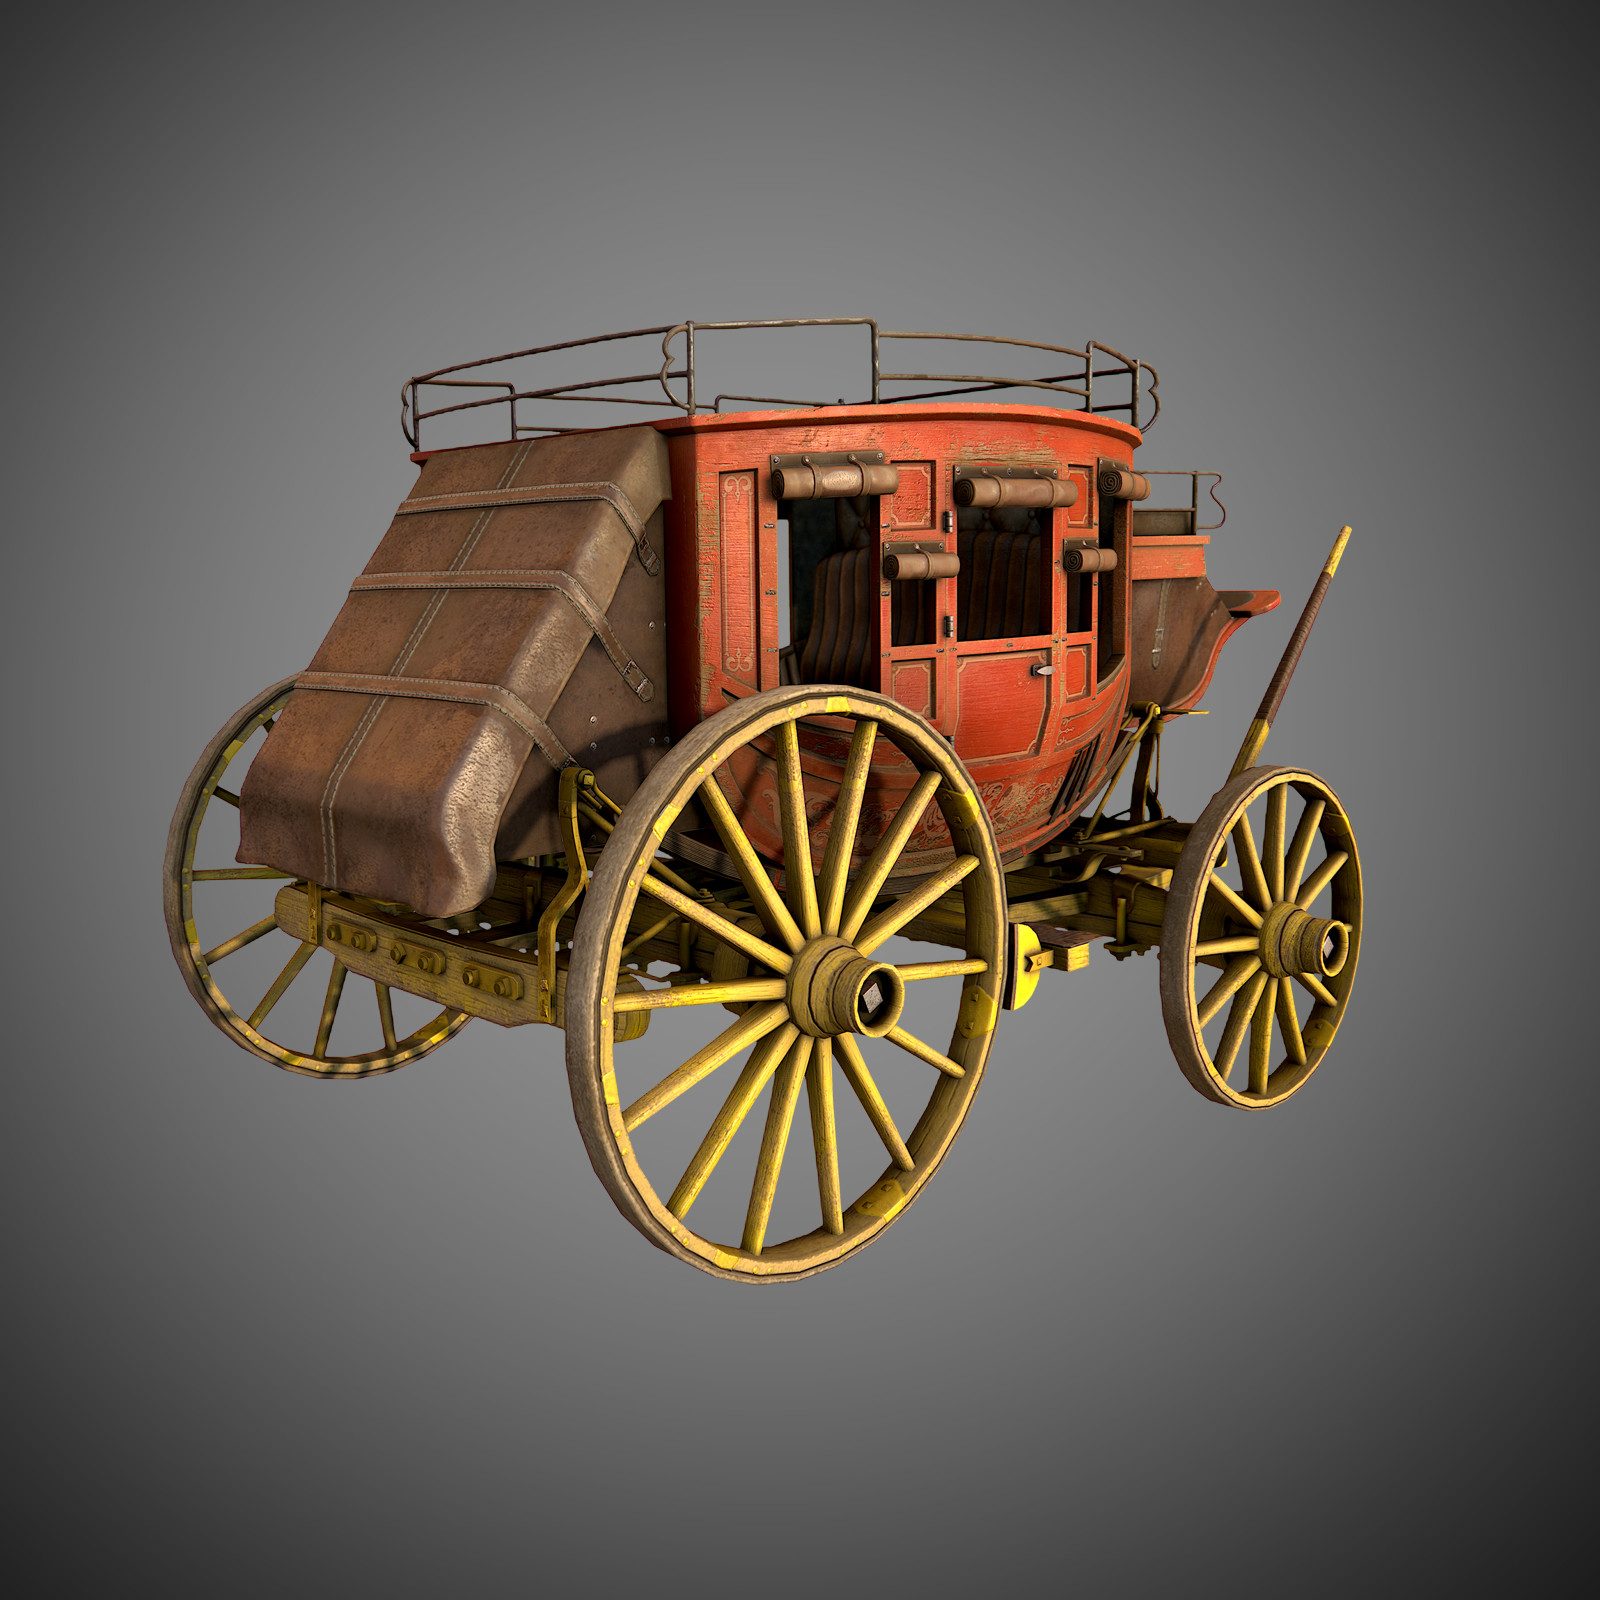 Paul fish stagecoach render 02